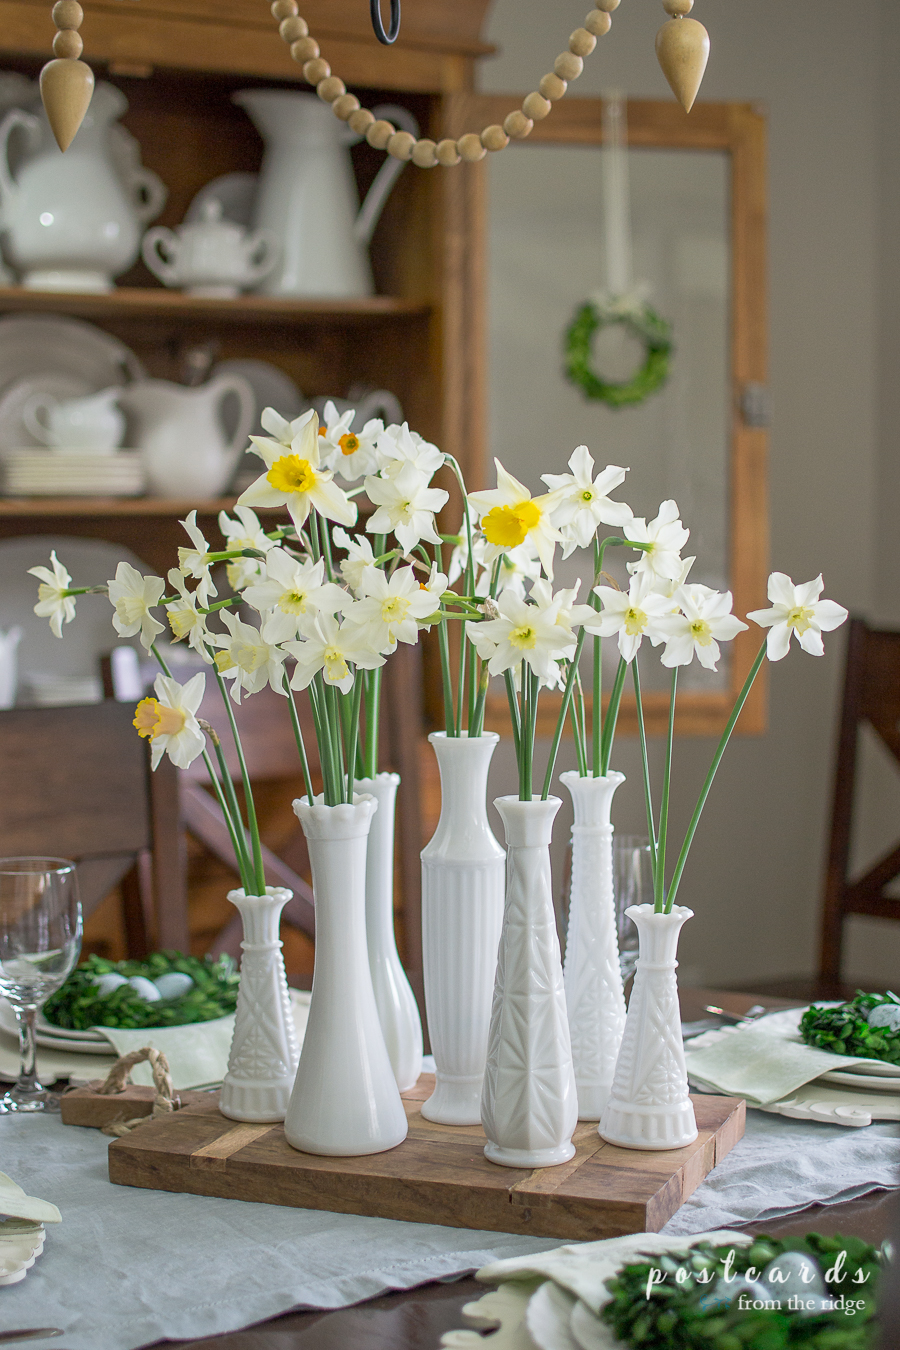 vintage milk glass vases on with narcissus on a spring table